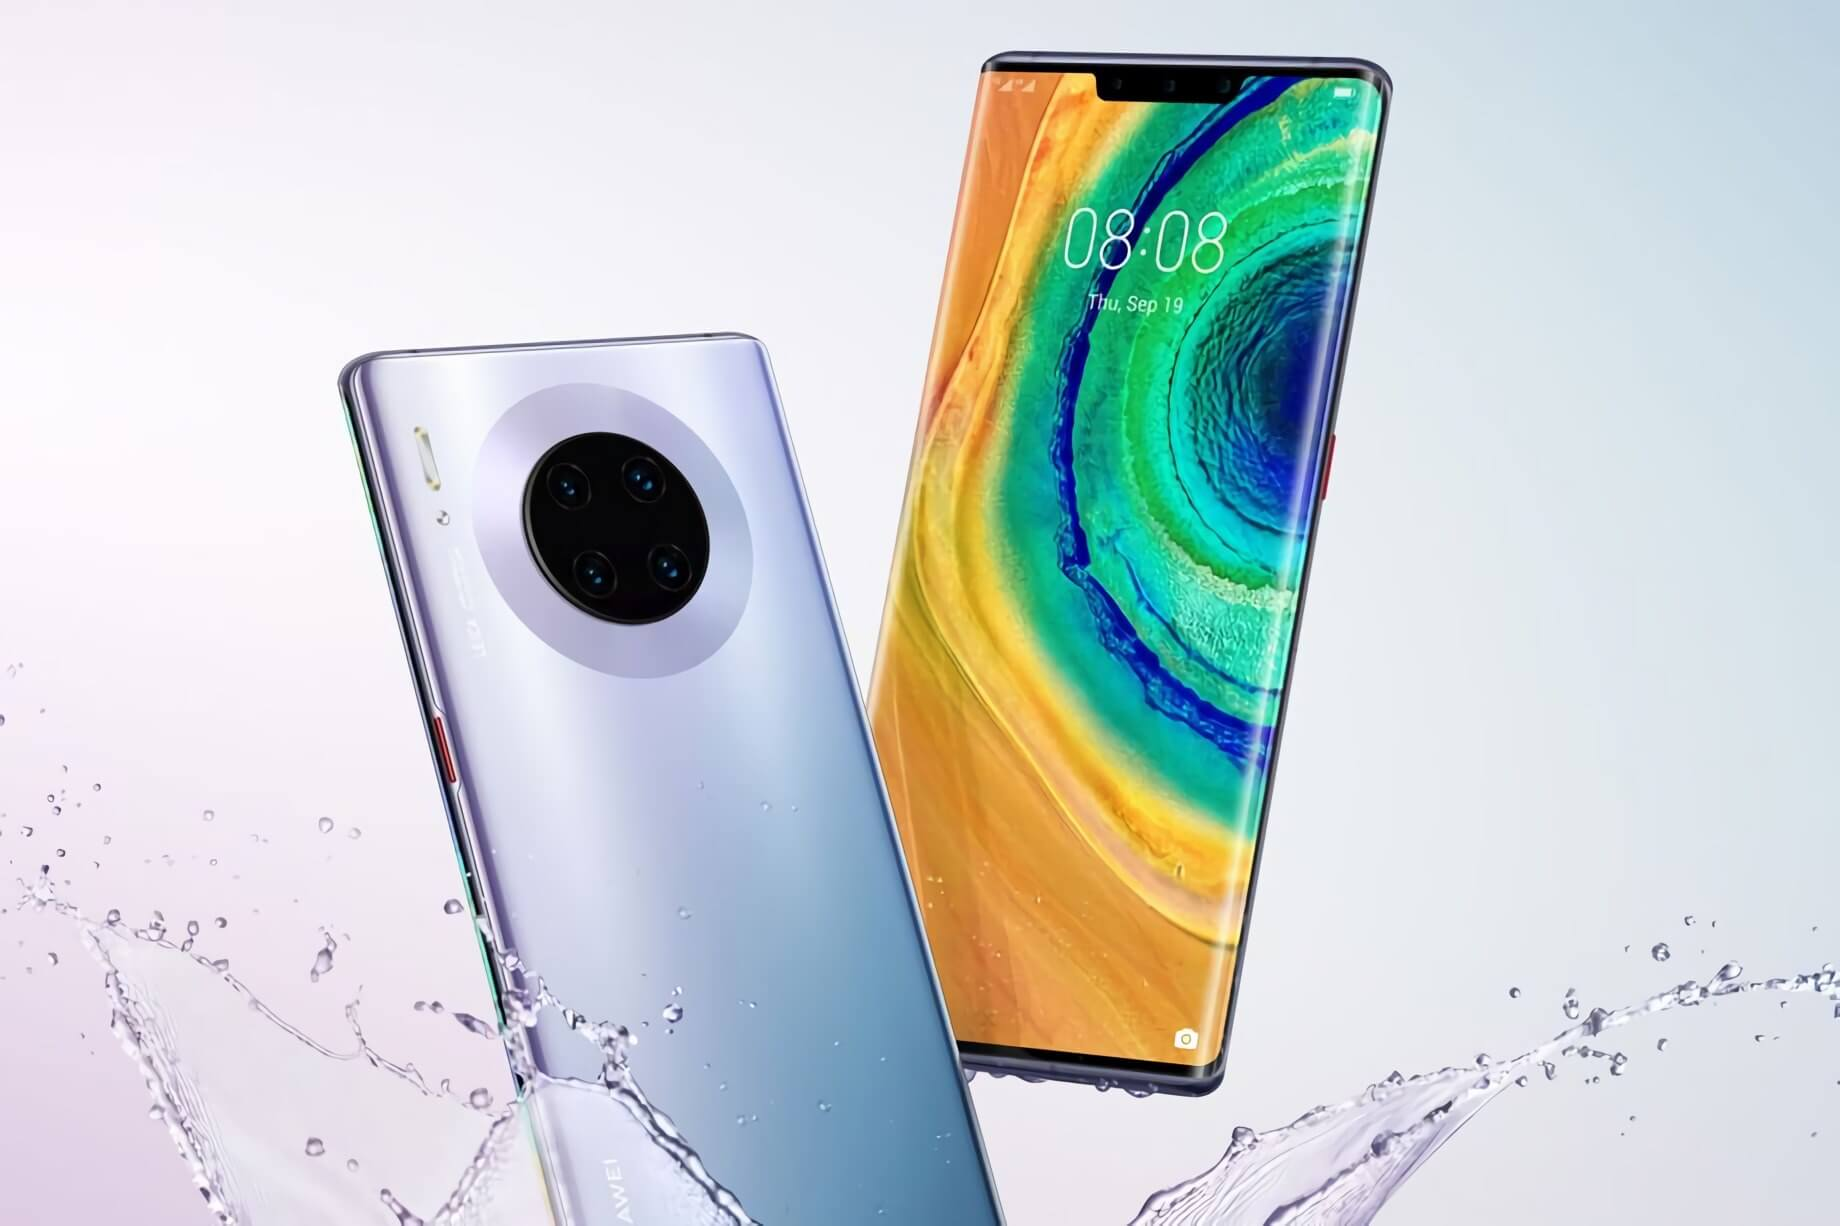 Leaked images of Huawei's Mate 30 indicate four versions are coming